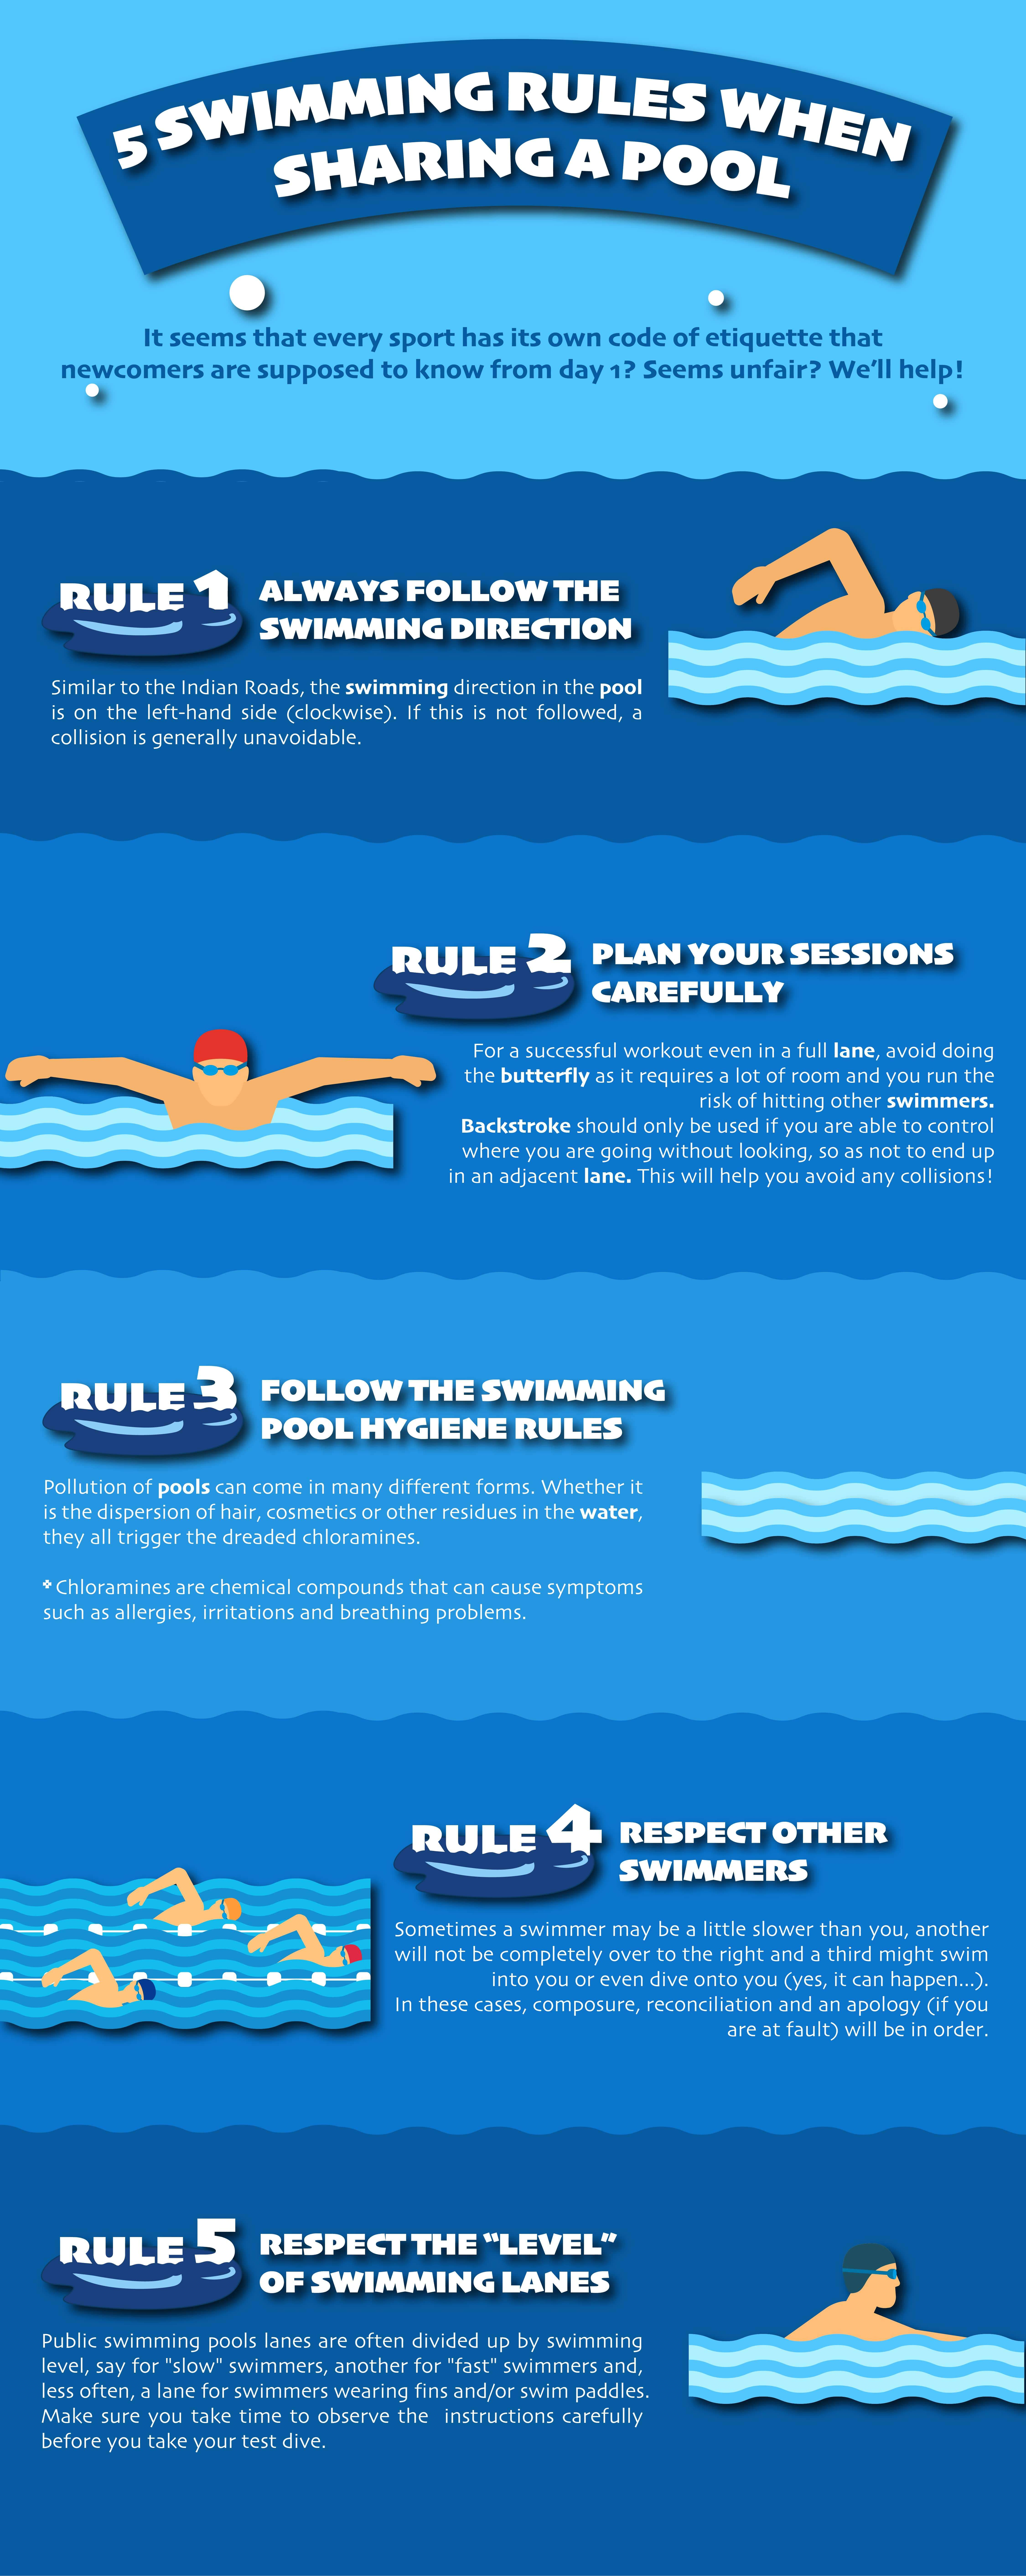 5 Swimming Rules when Sharing a Pool